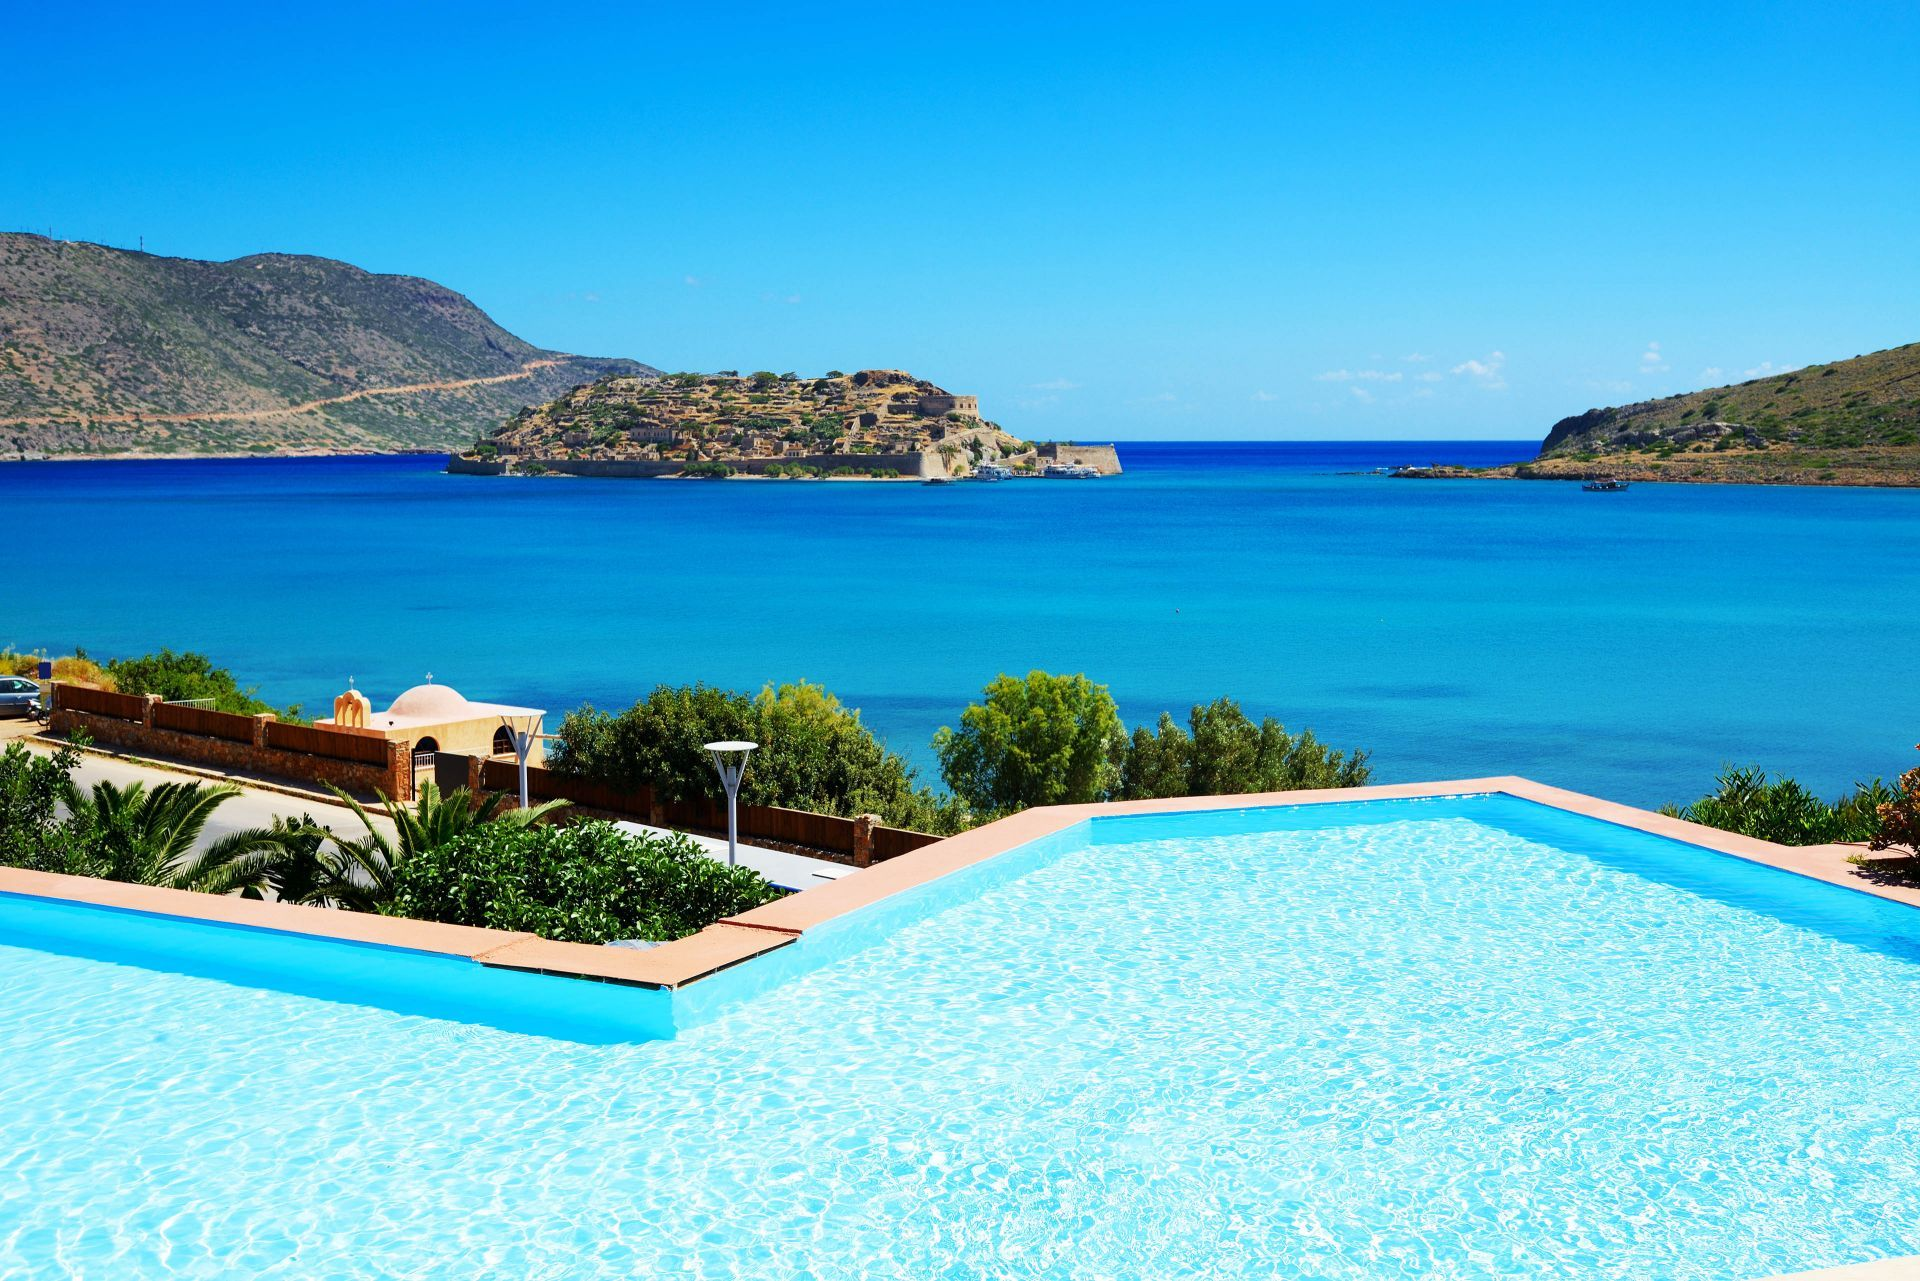 Accommodation and hotels in Crete